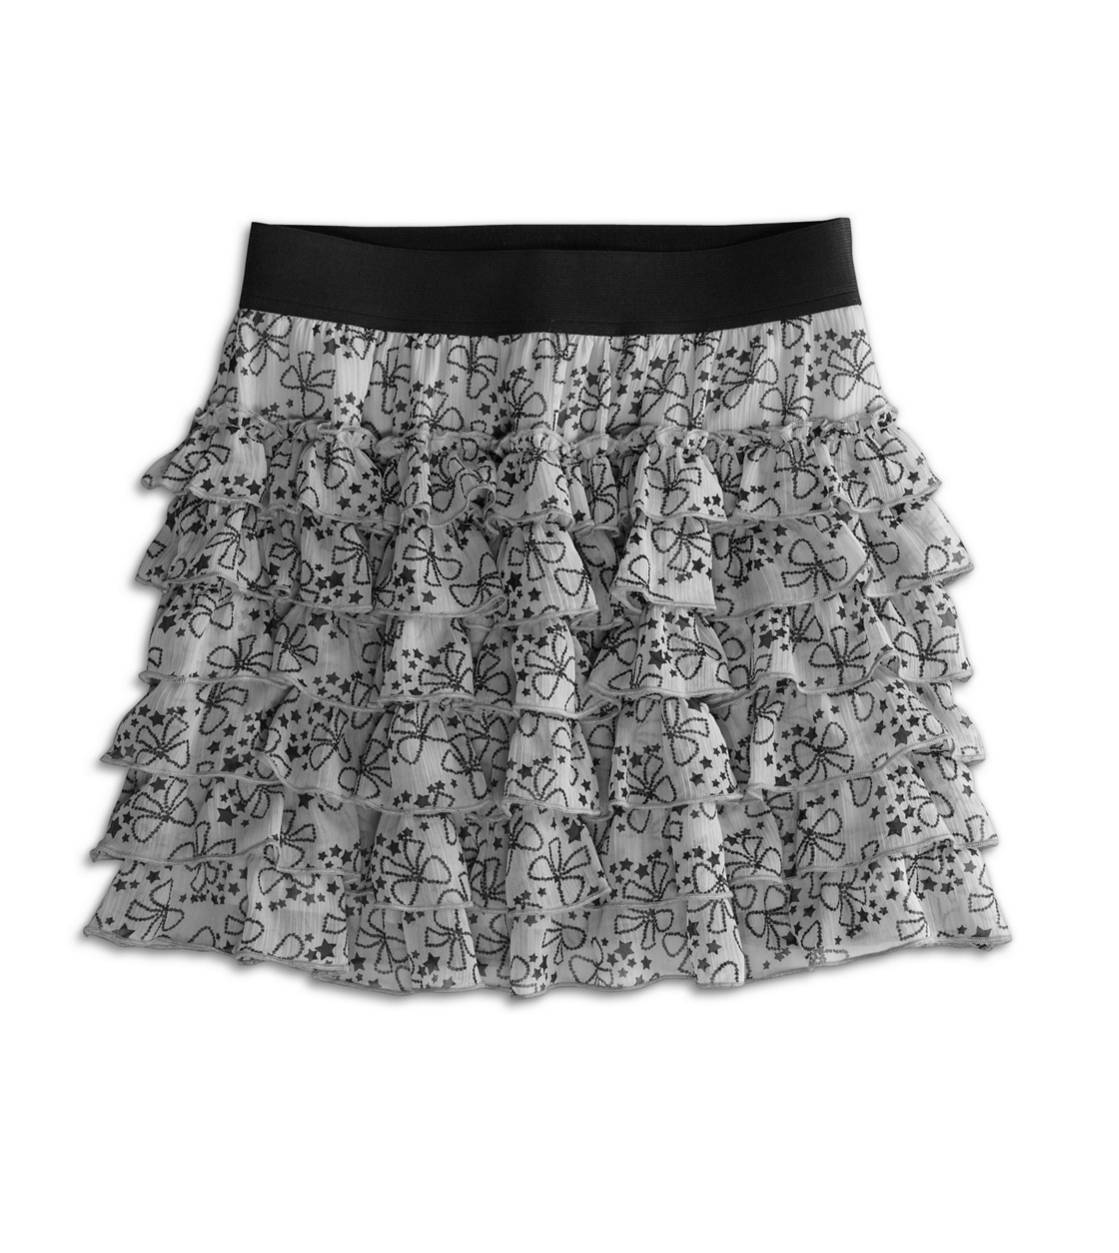 77 twirly ruffle skirt | 77kids by American Eagle